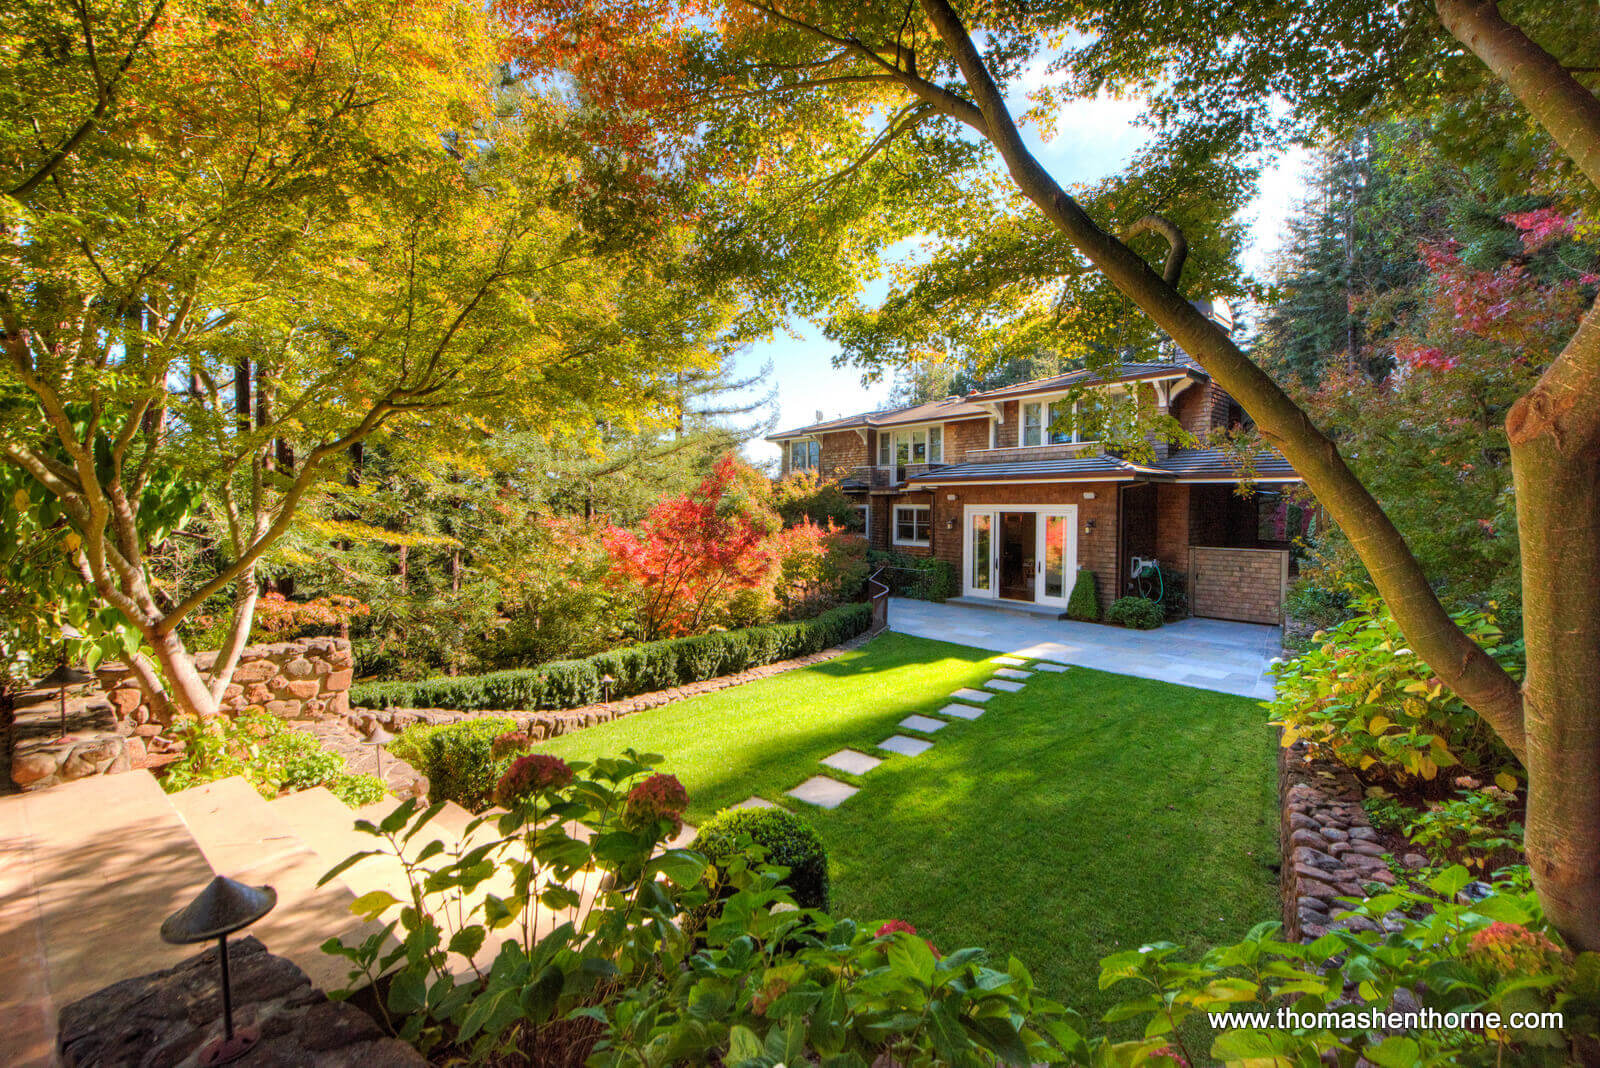 Photo of 8 Woodland Place in Kentfield, California